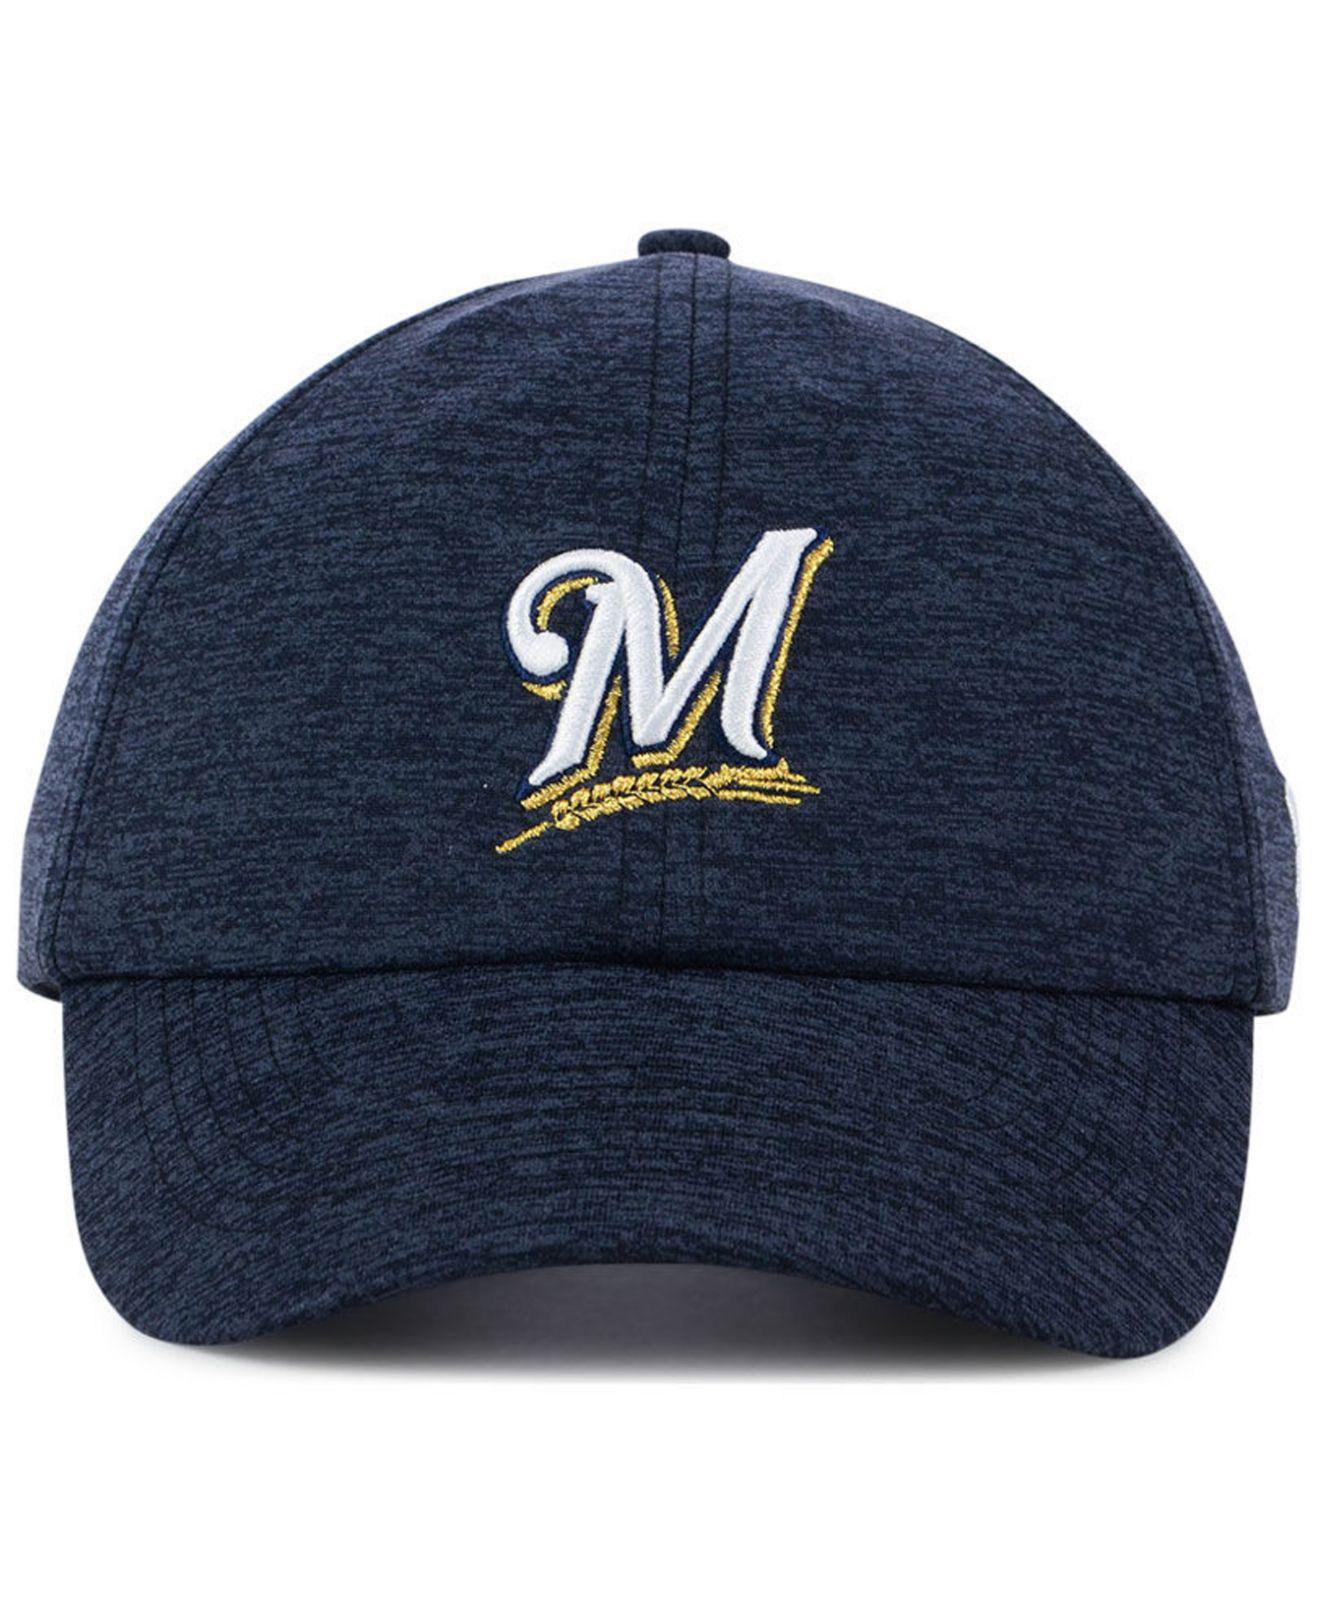 uk availability 353b5 8c5ad ... ireland lyst under armour milwaukee brewers renegade twist cap in blue  save 25.925925925925924 f11f3 2d252